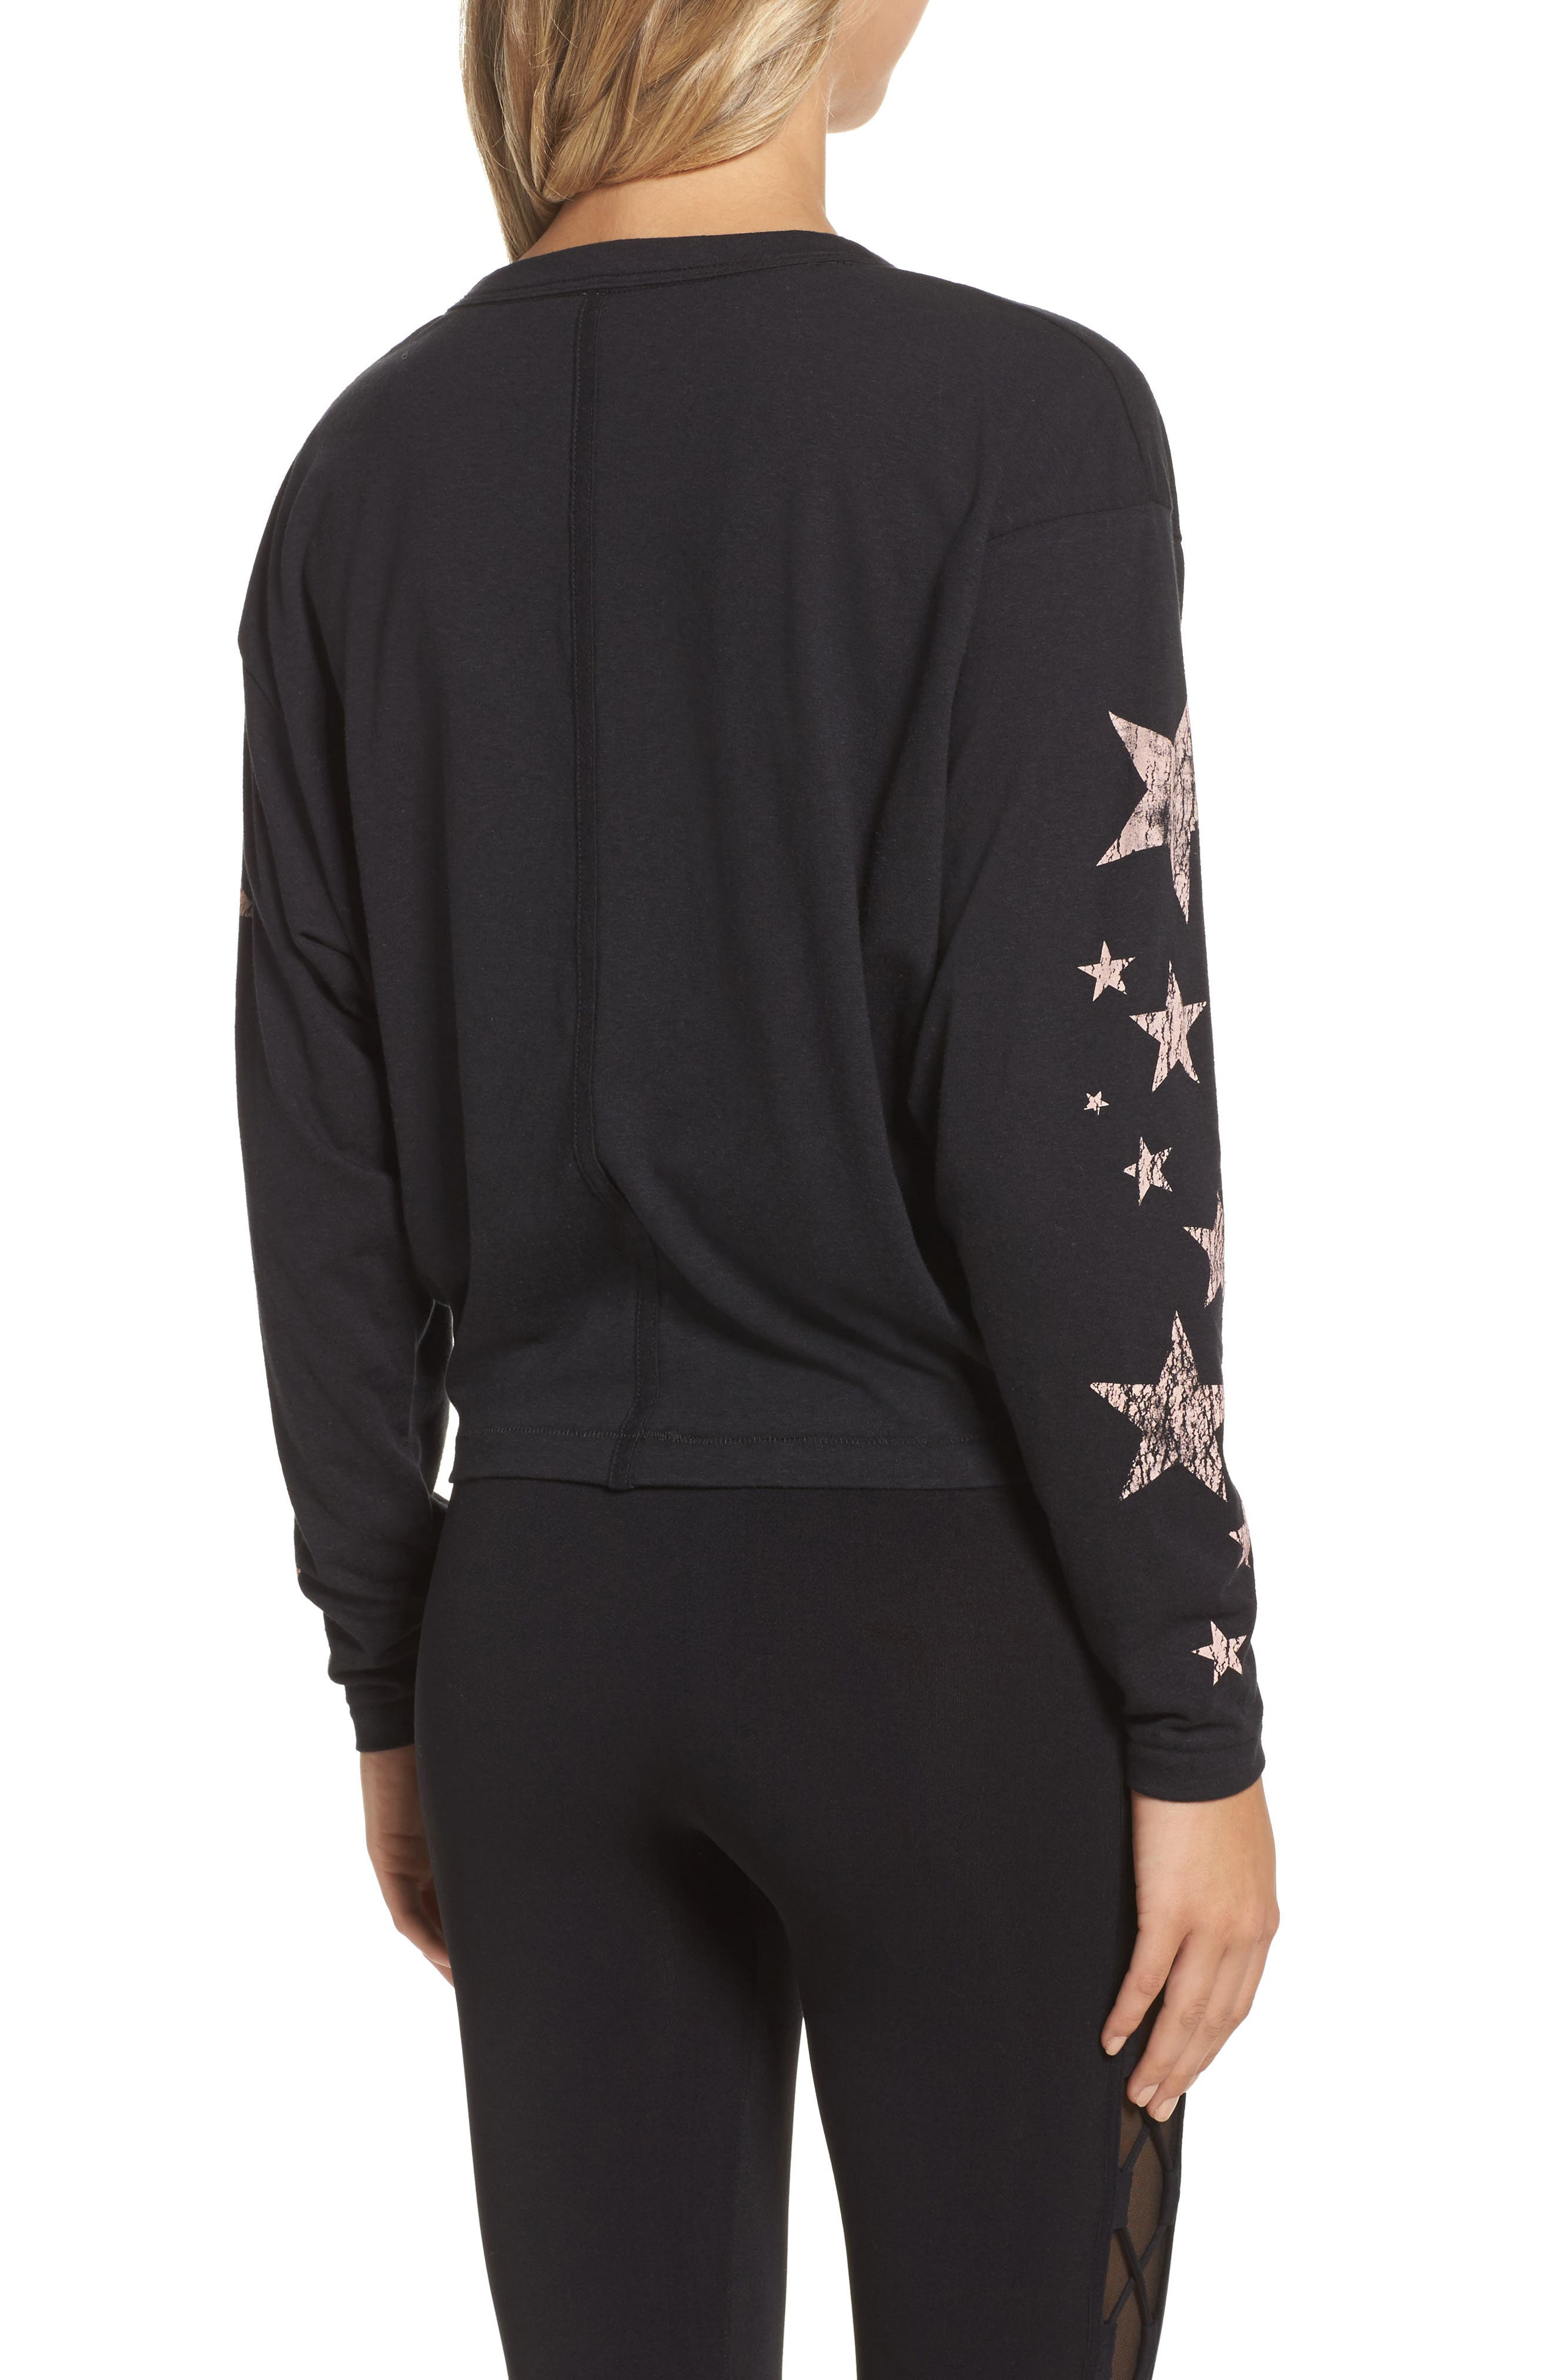 FREE PEOPLE MOVEMENT, Melrose Star Graphic Top, Alternate thumbnail 2, color, 001